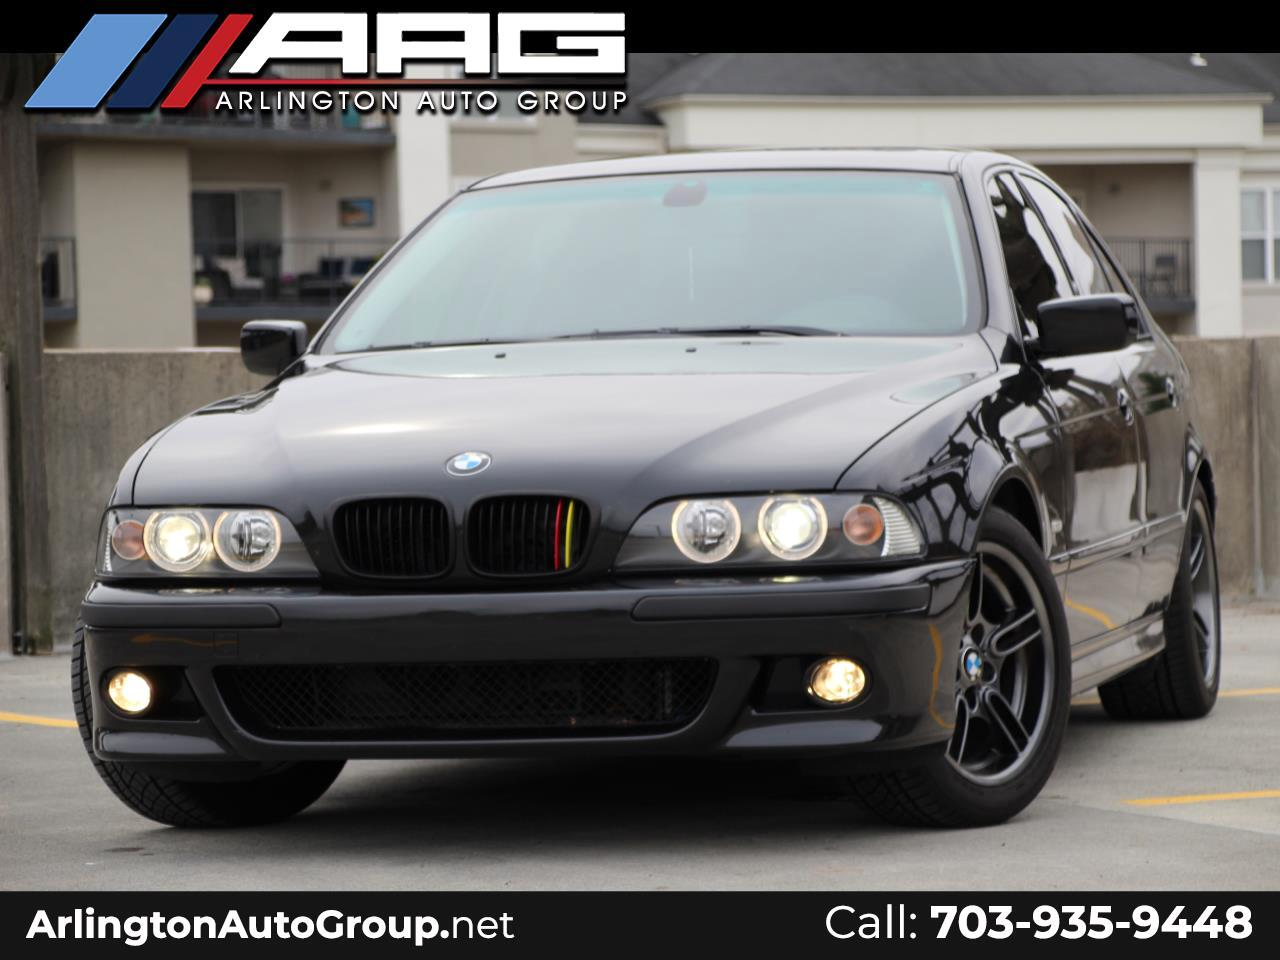 BMW 5 Series 540i 4dr Sdn 6-Spd Manual 2002